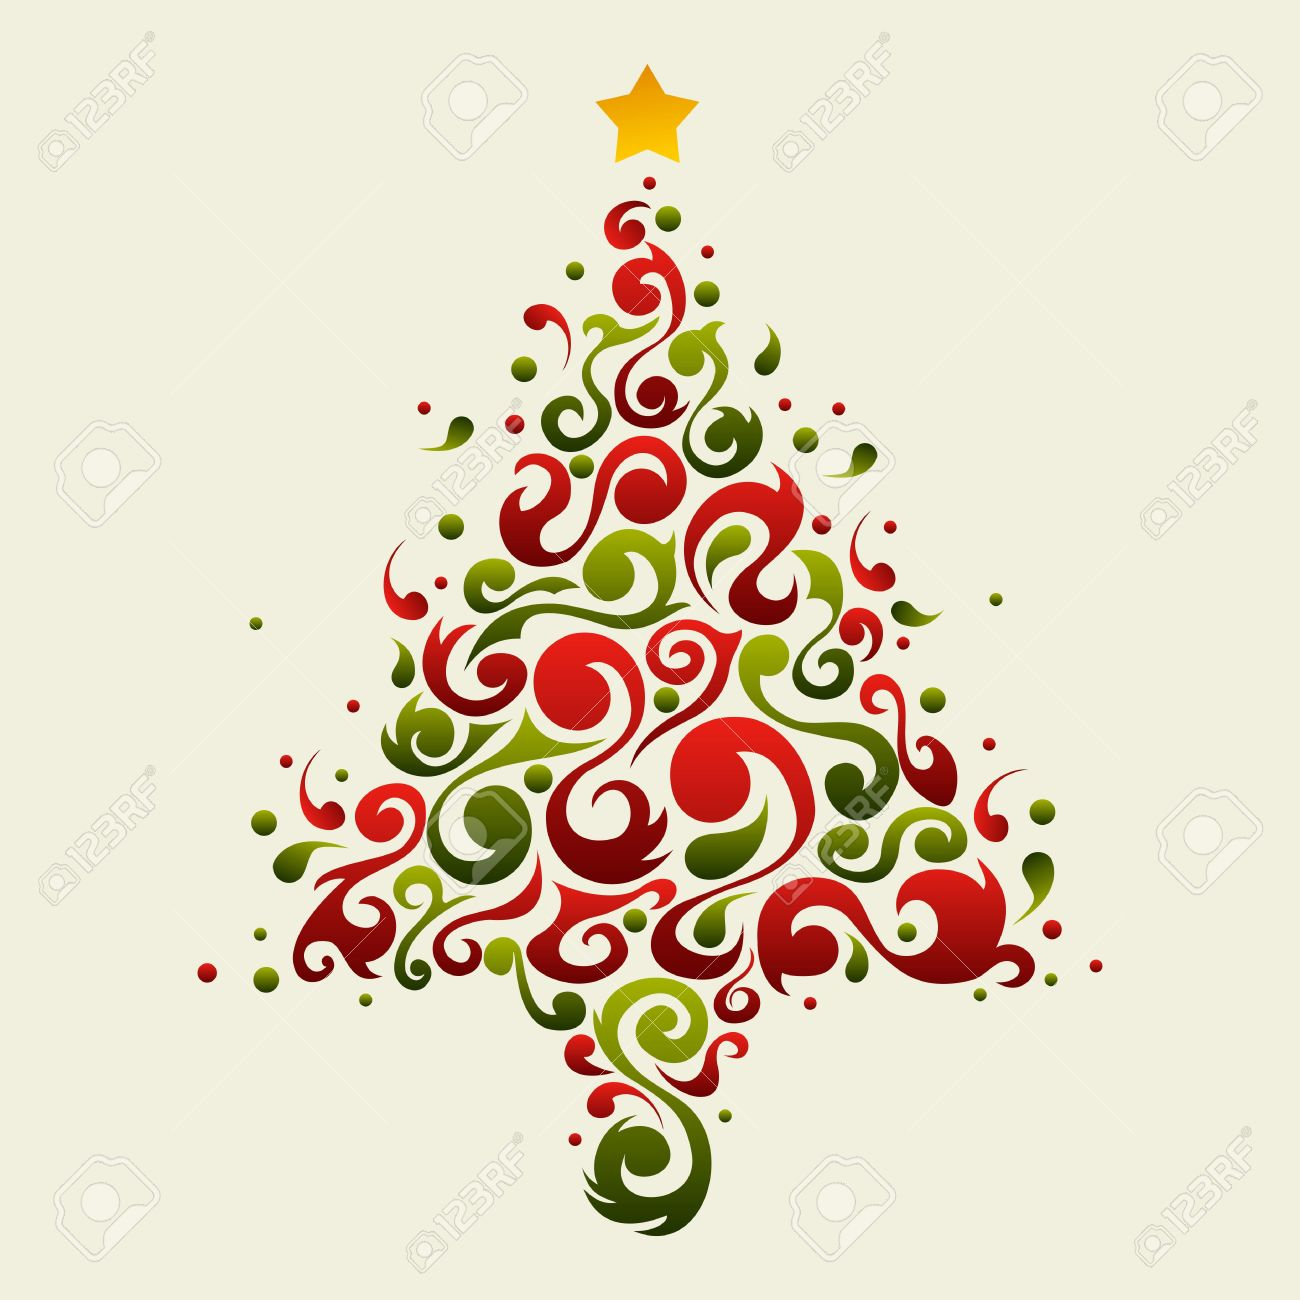 Christmas Tree Made With Green And Red Floral Ornamental Shapes ...